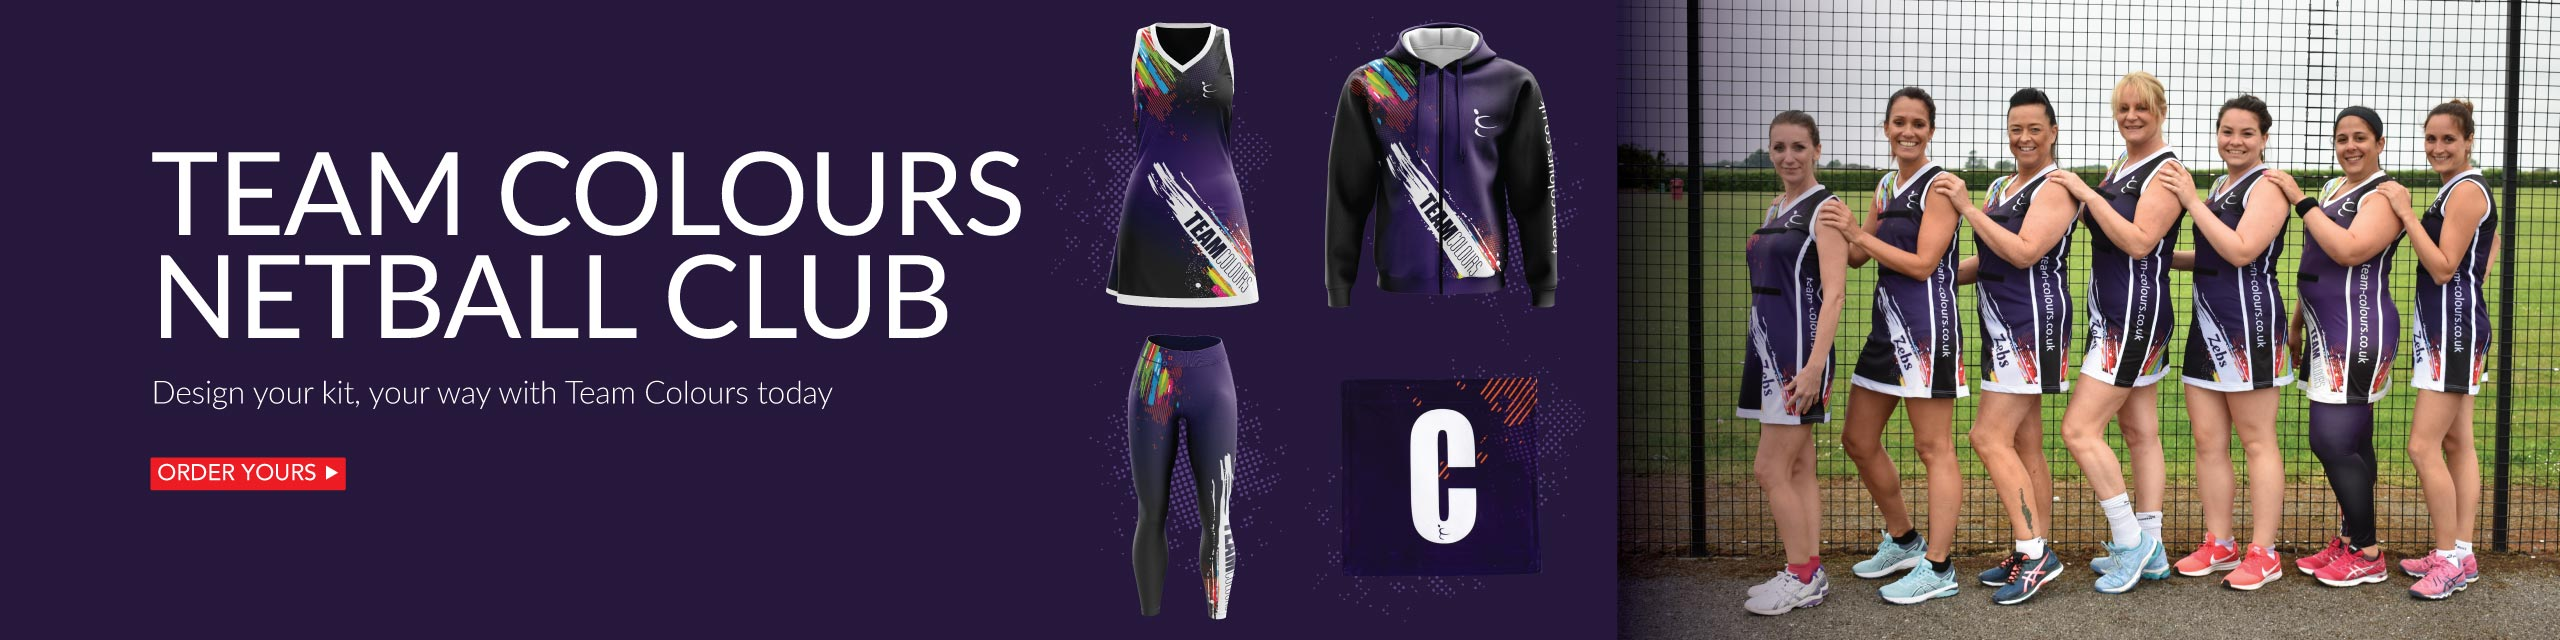 Design your own netball kits